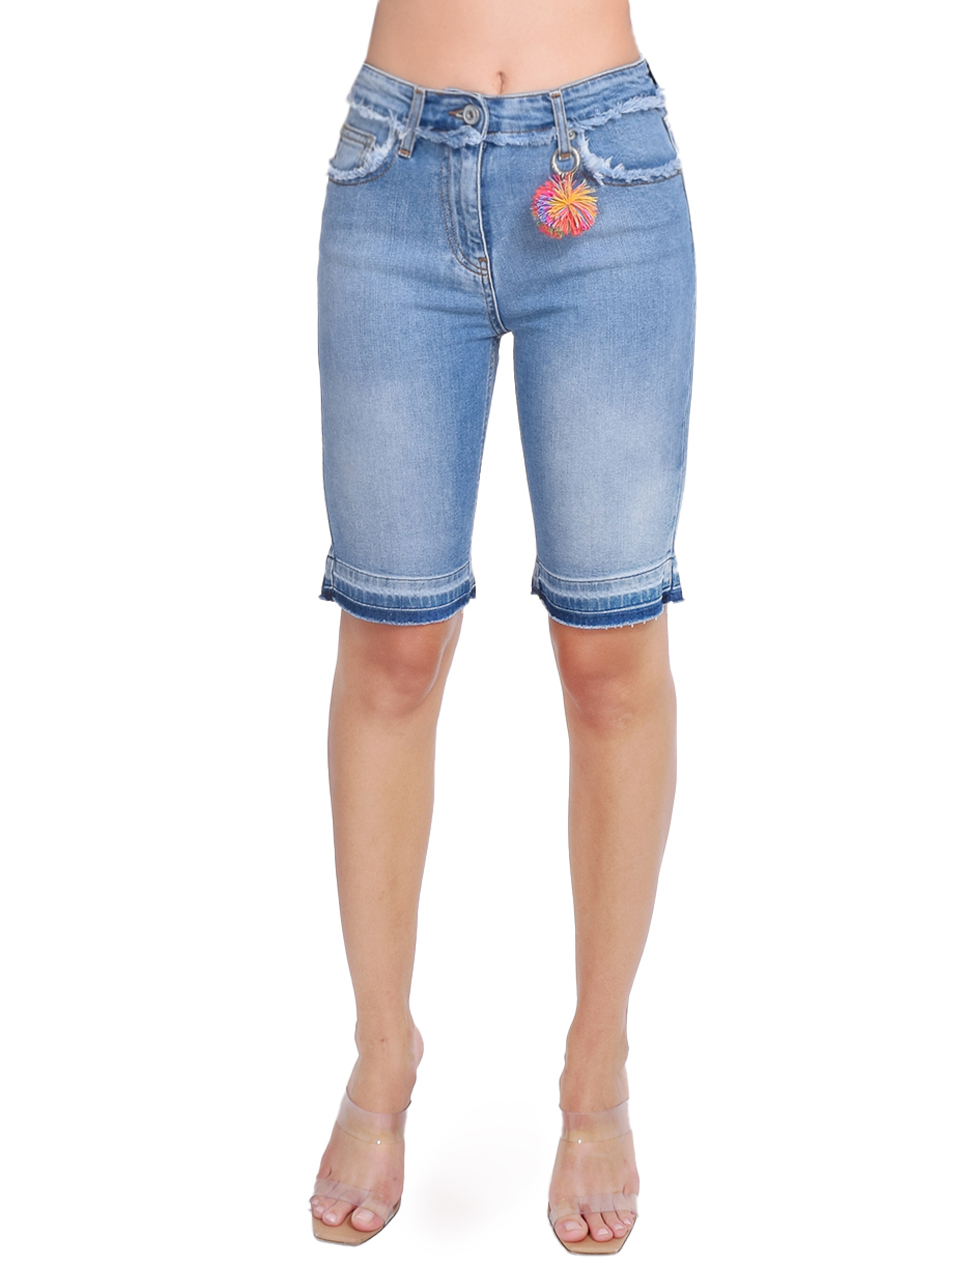 Ottod'Ame Denim Bike Shorts with Trims Front View  X1https://cdn11.bigcommerce.com/s-3wu6n/products/33263/images/110011/1__91233.1594079085__06980.1594330307.244.365.jpg?c=2x2